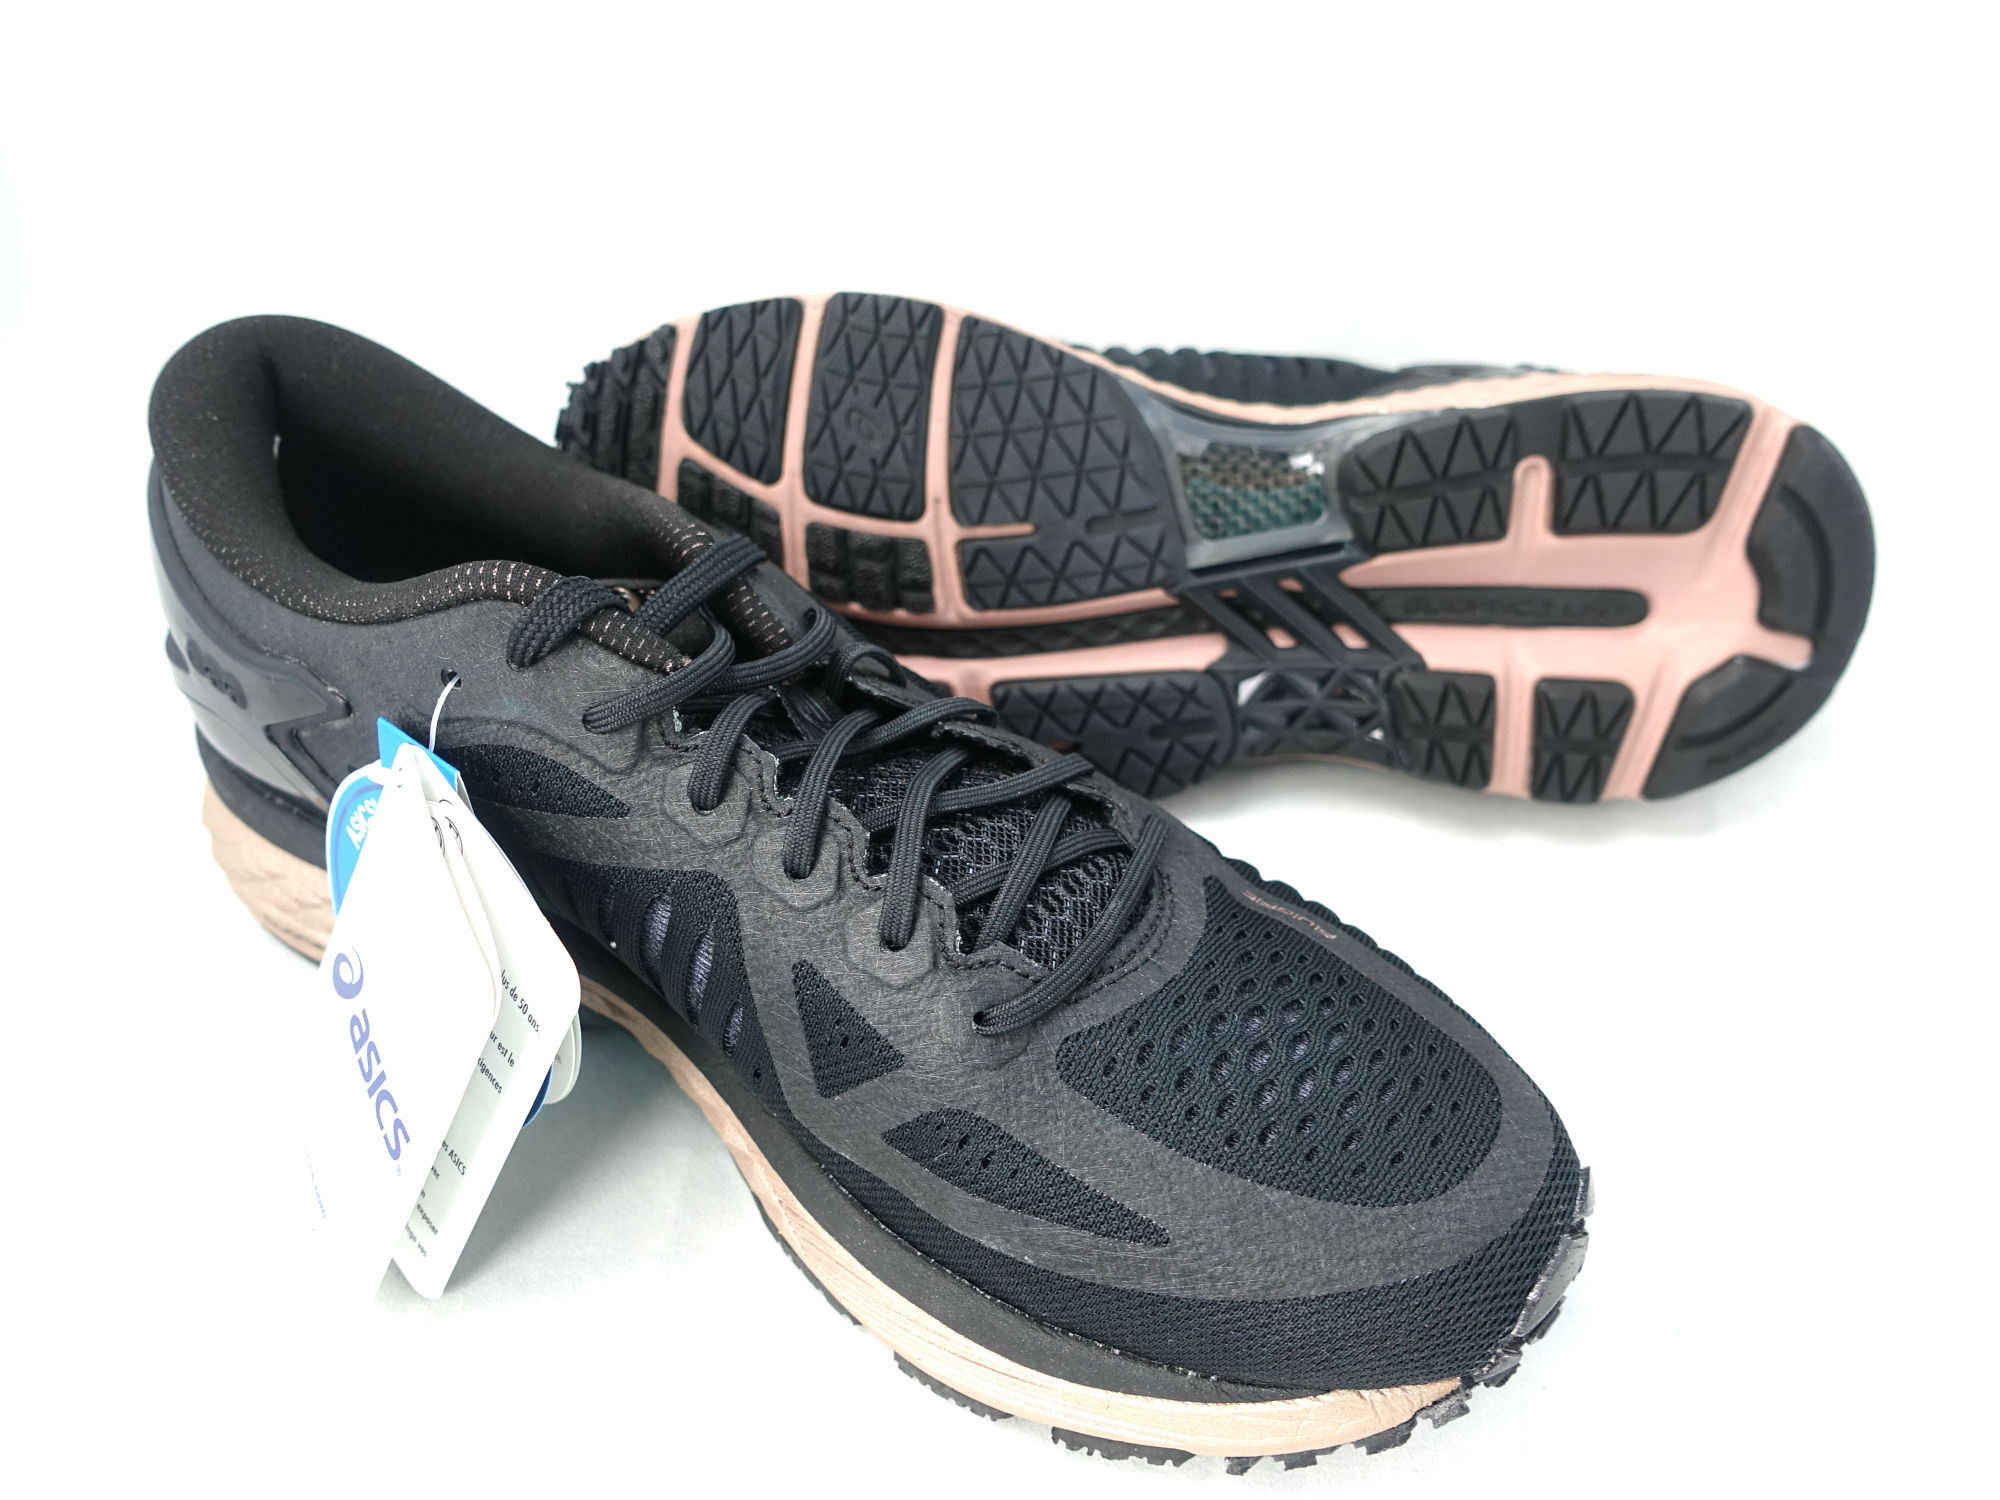 asics metarun rose gold